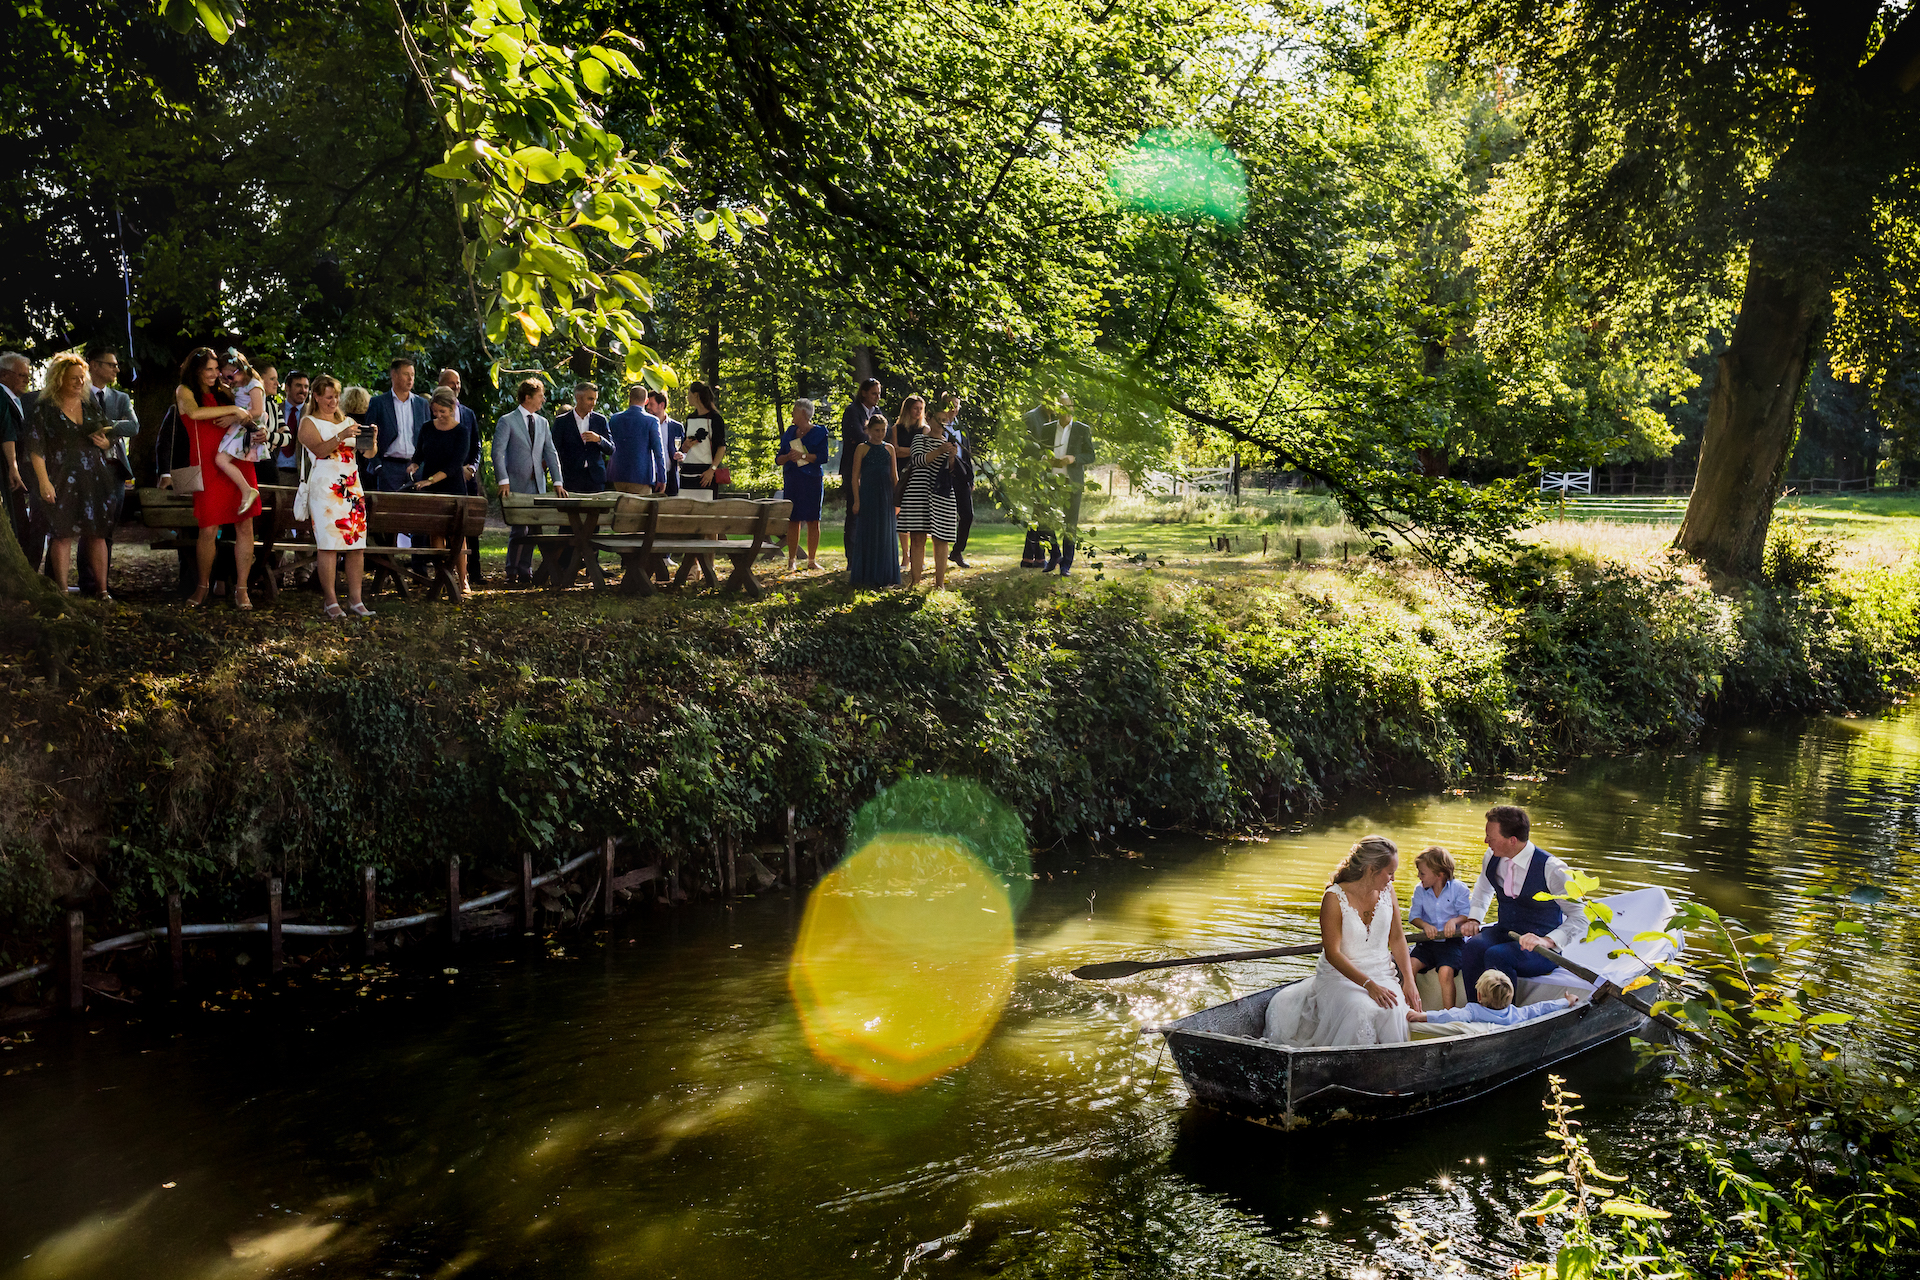 Kobe Vanderzande, of Limburg, is a wedding photographer for